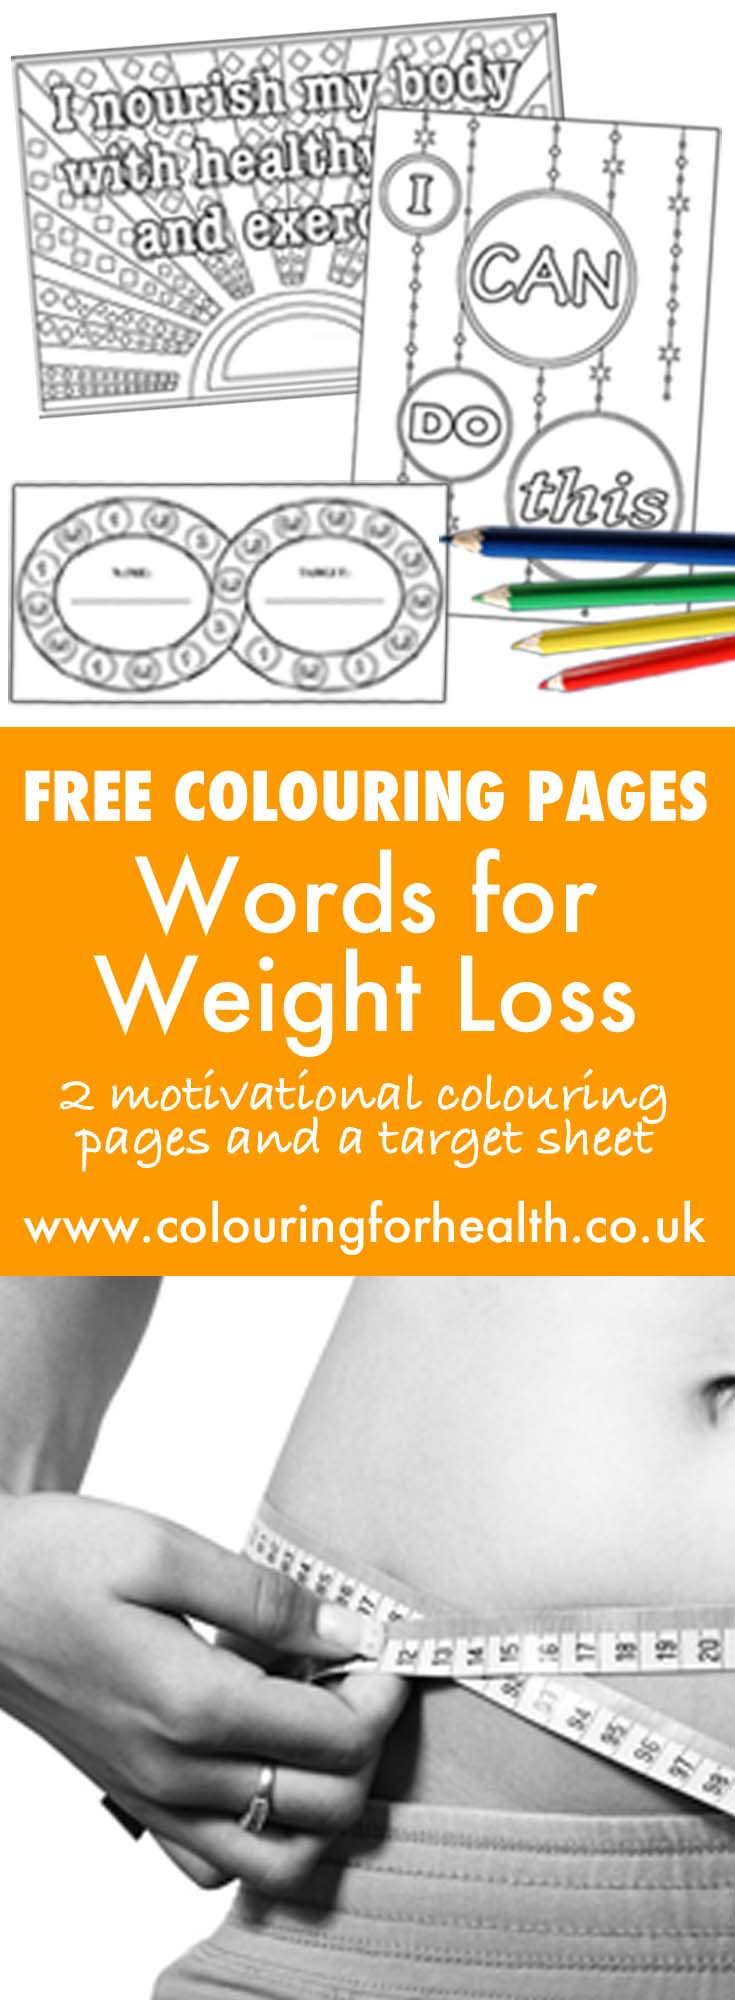 Free weight loss coloring pages